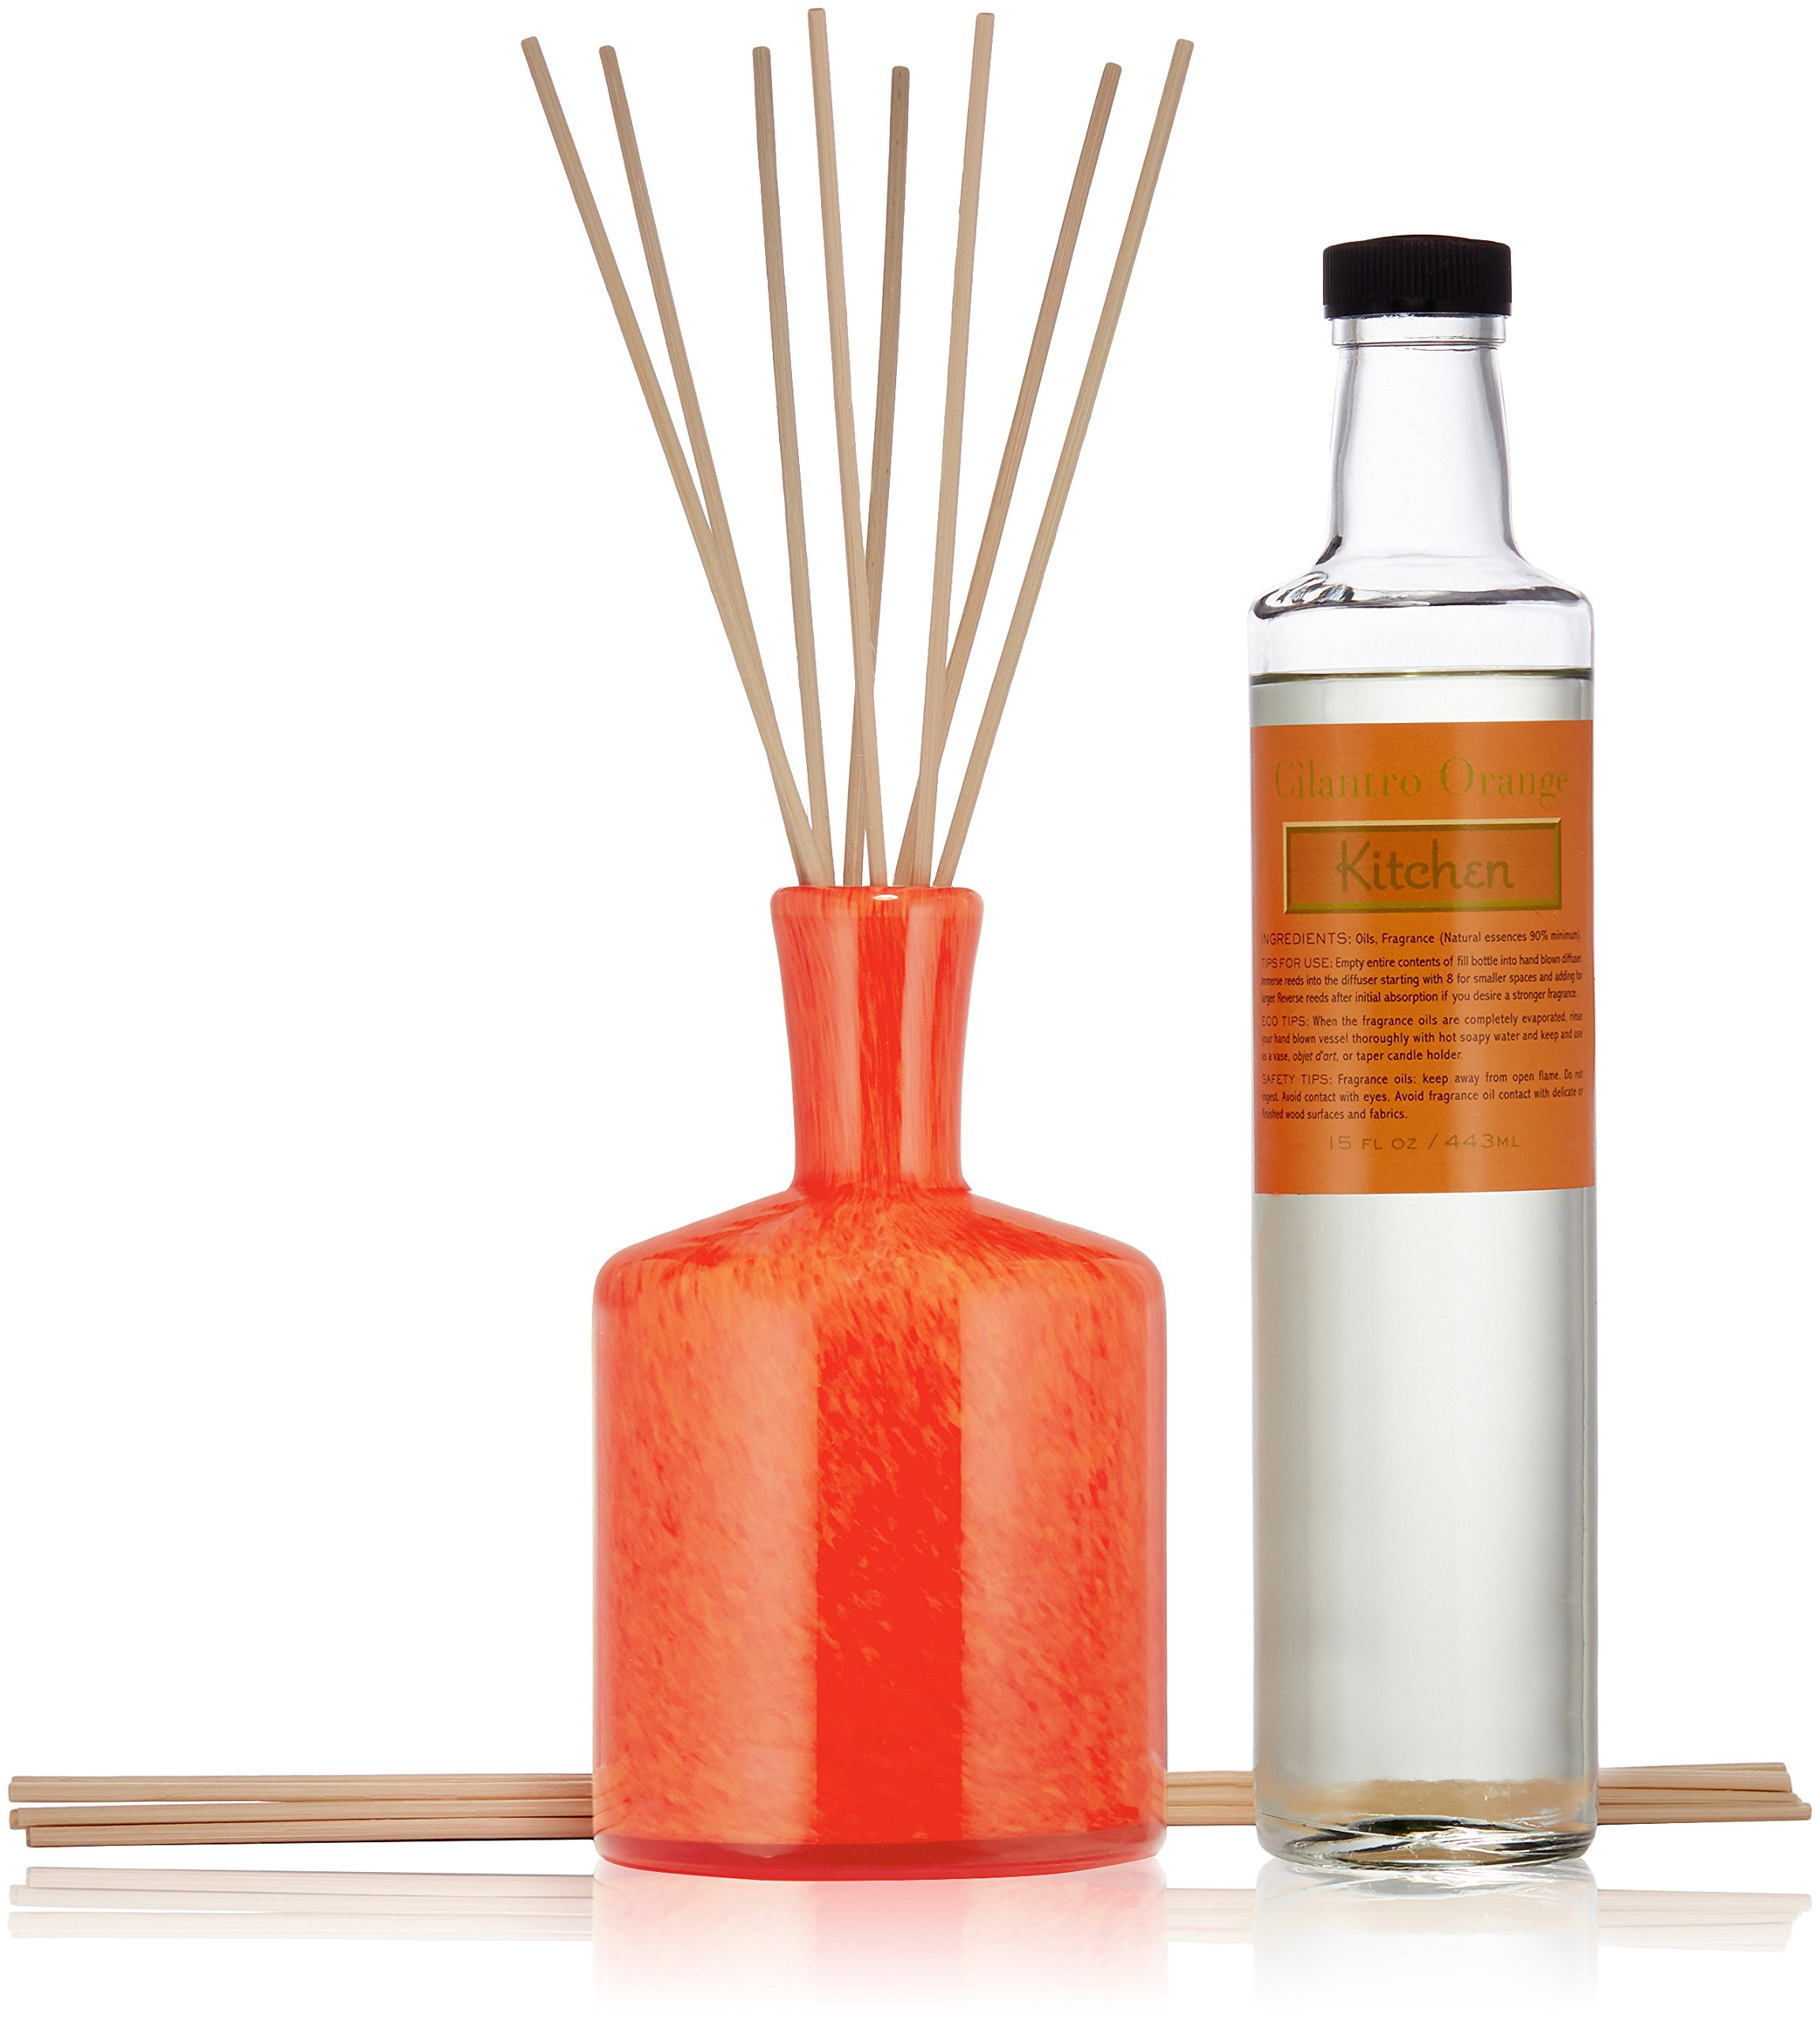 LAFCO House & Home Diffuser, Kitchen Cilantro Orange, 15 Fl Oz by LAFCO